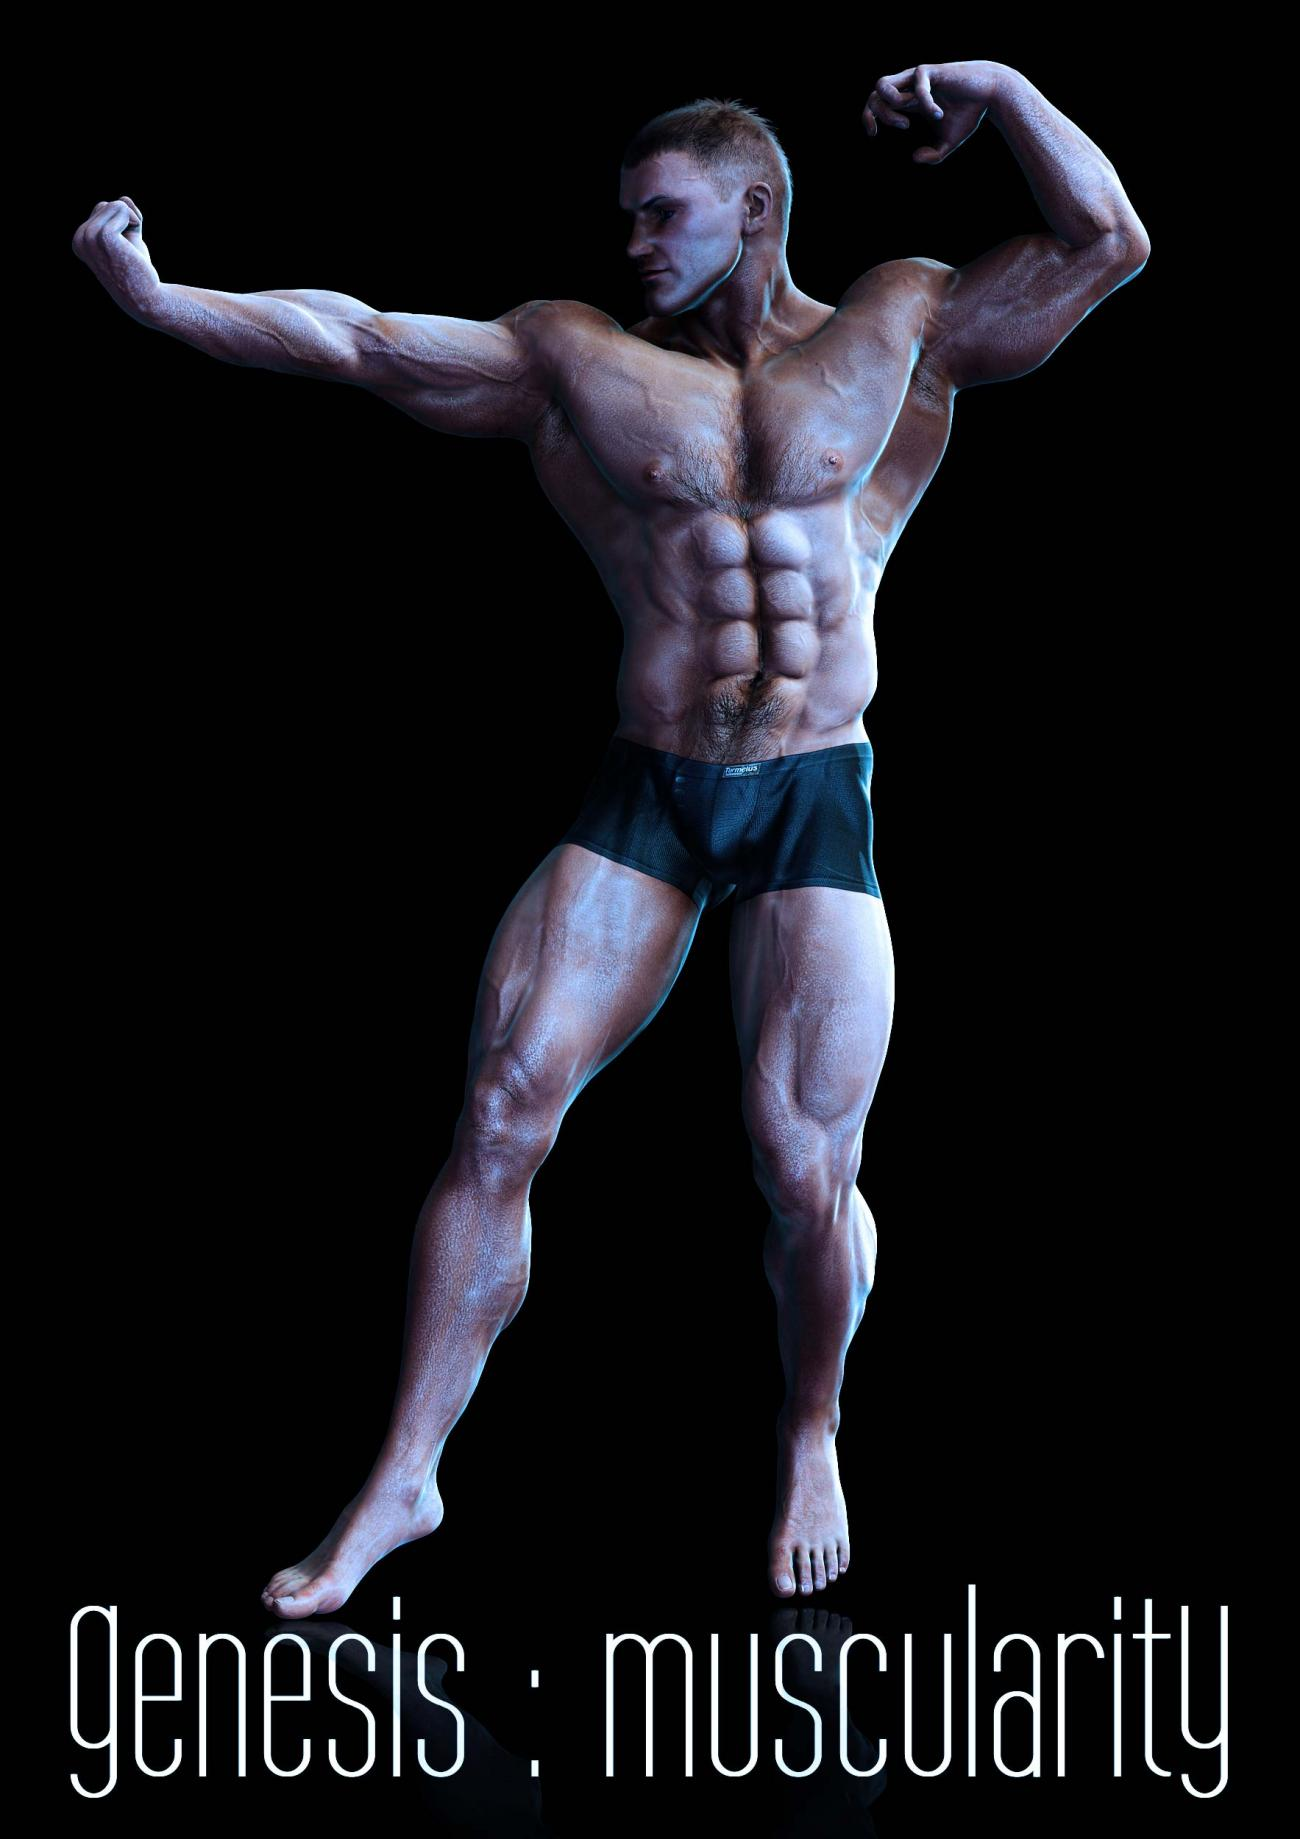 Muscularity I